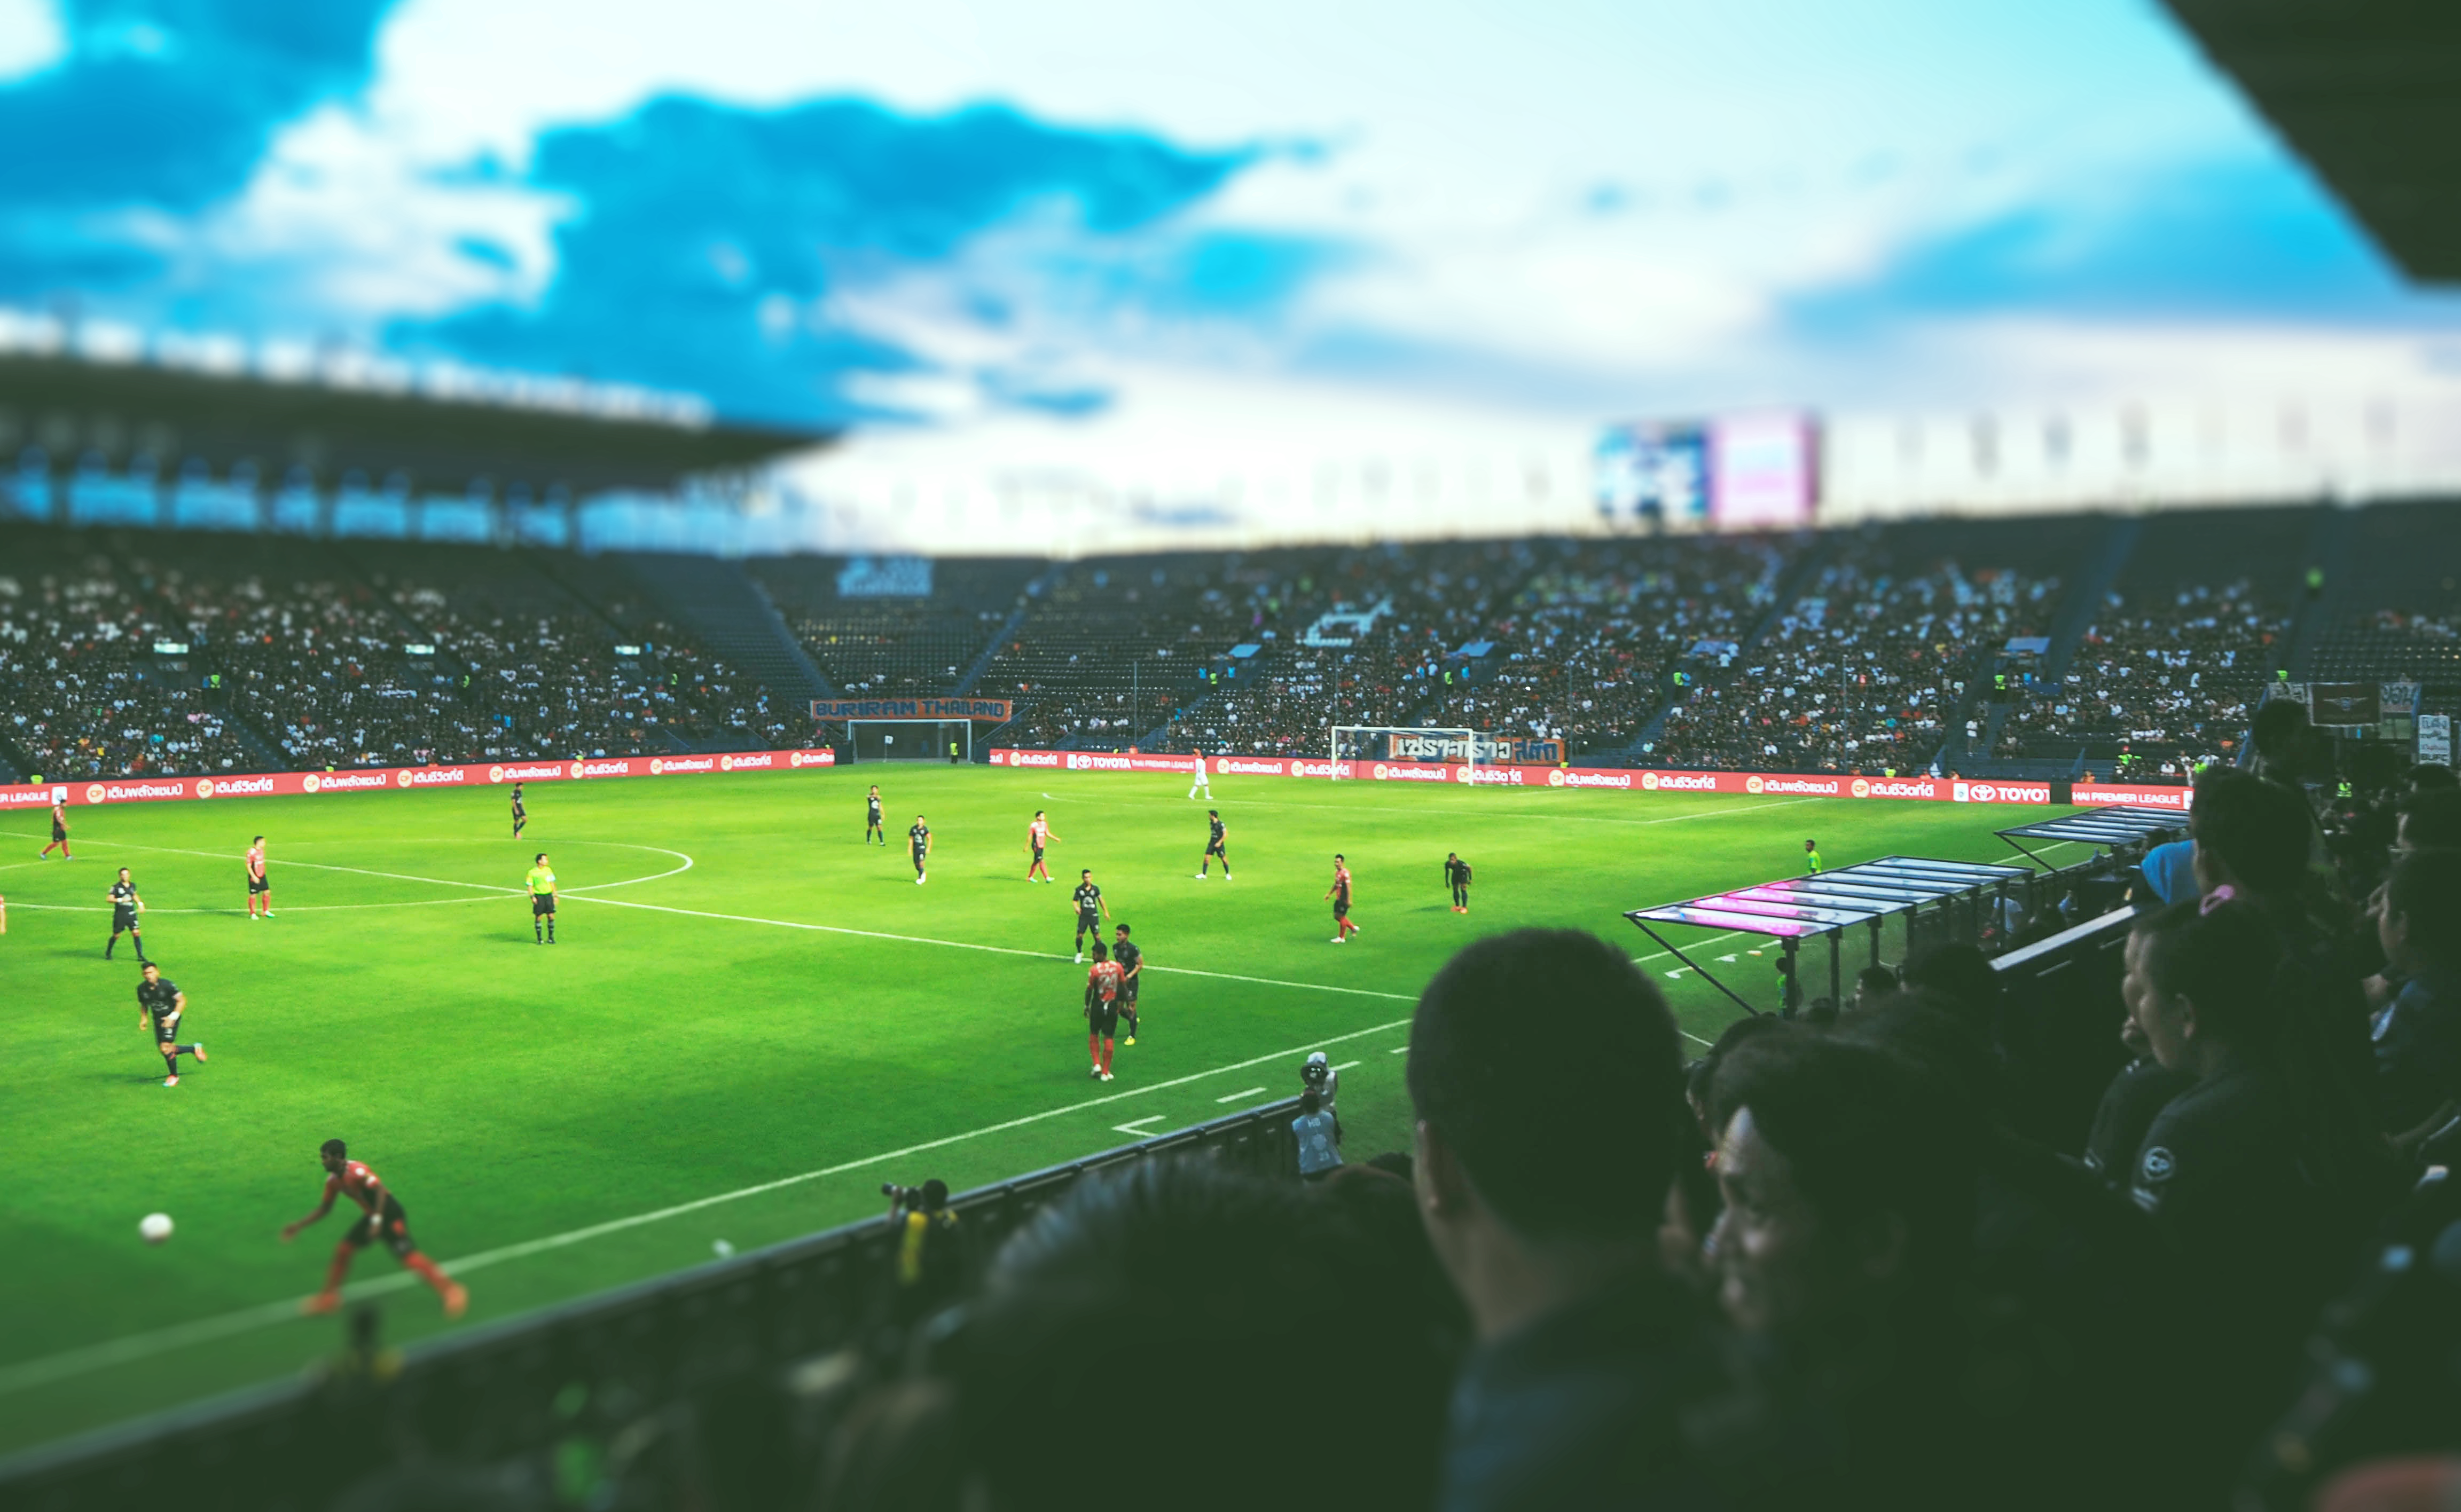 Attend Sporting Game for More Employee Engagement